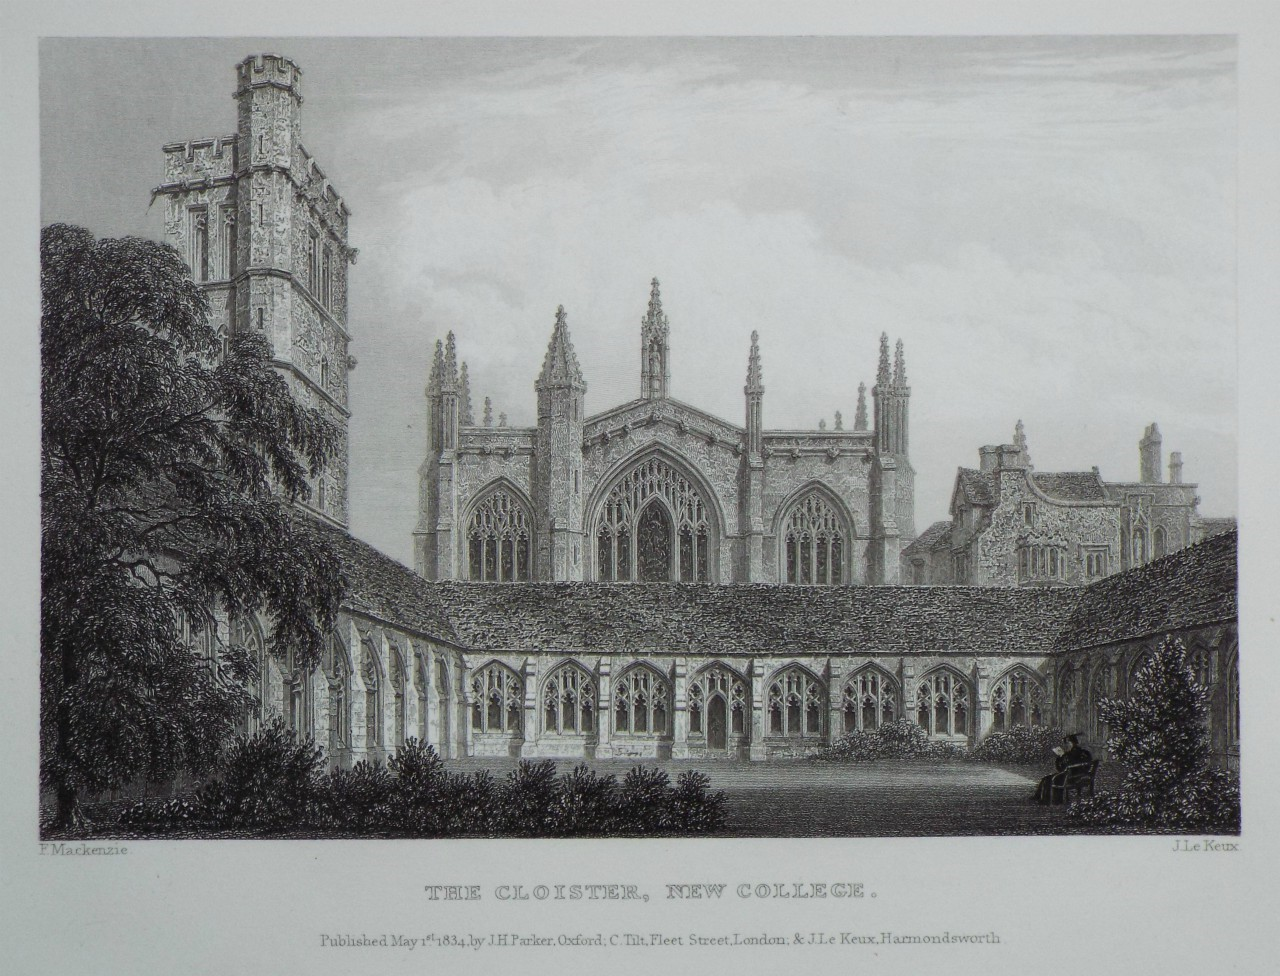 Print - The Cloister, New College. - Le